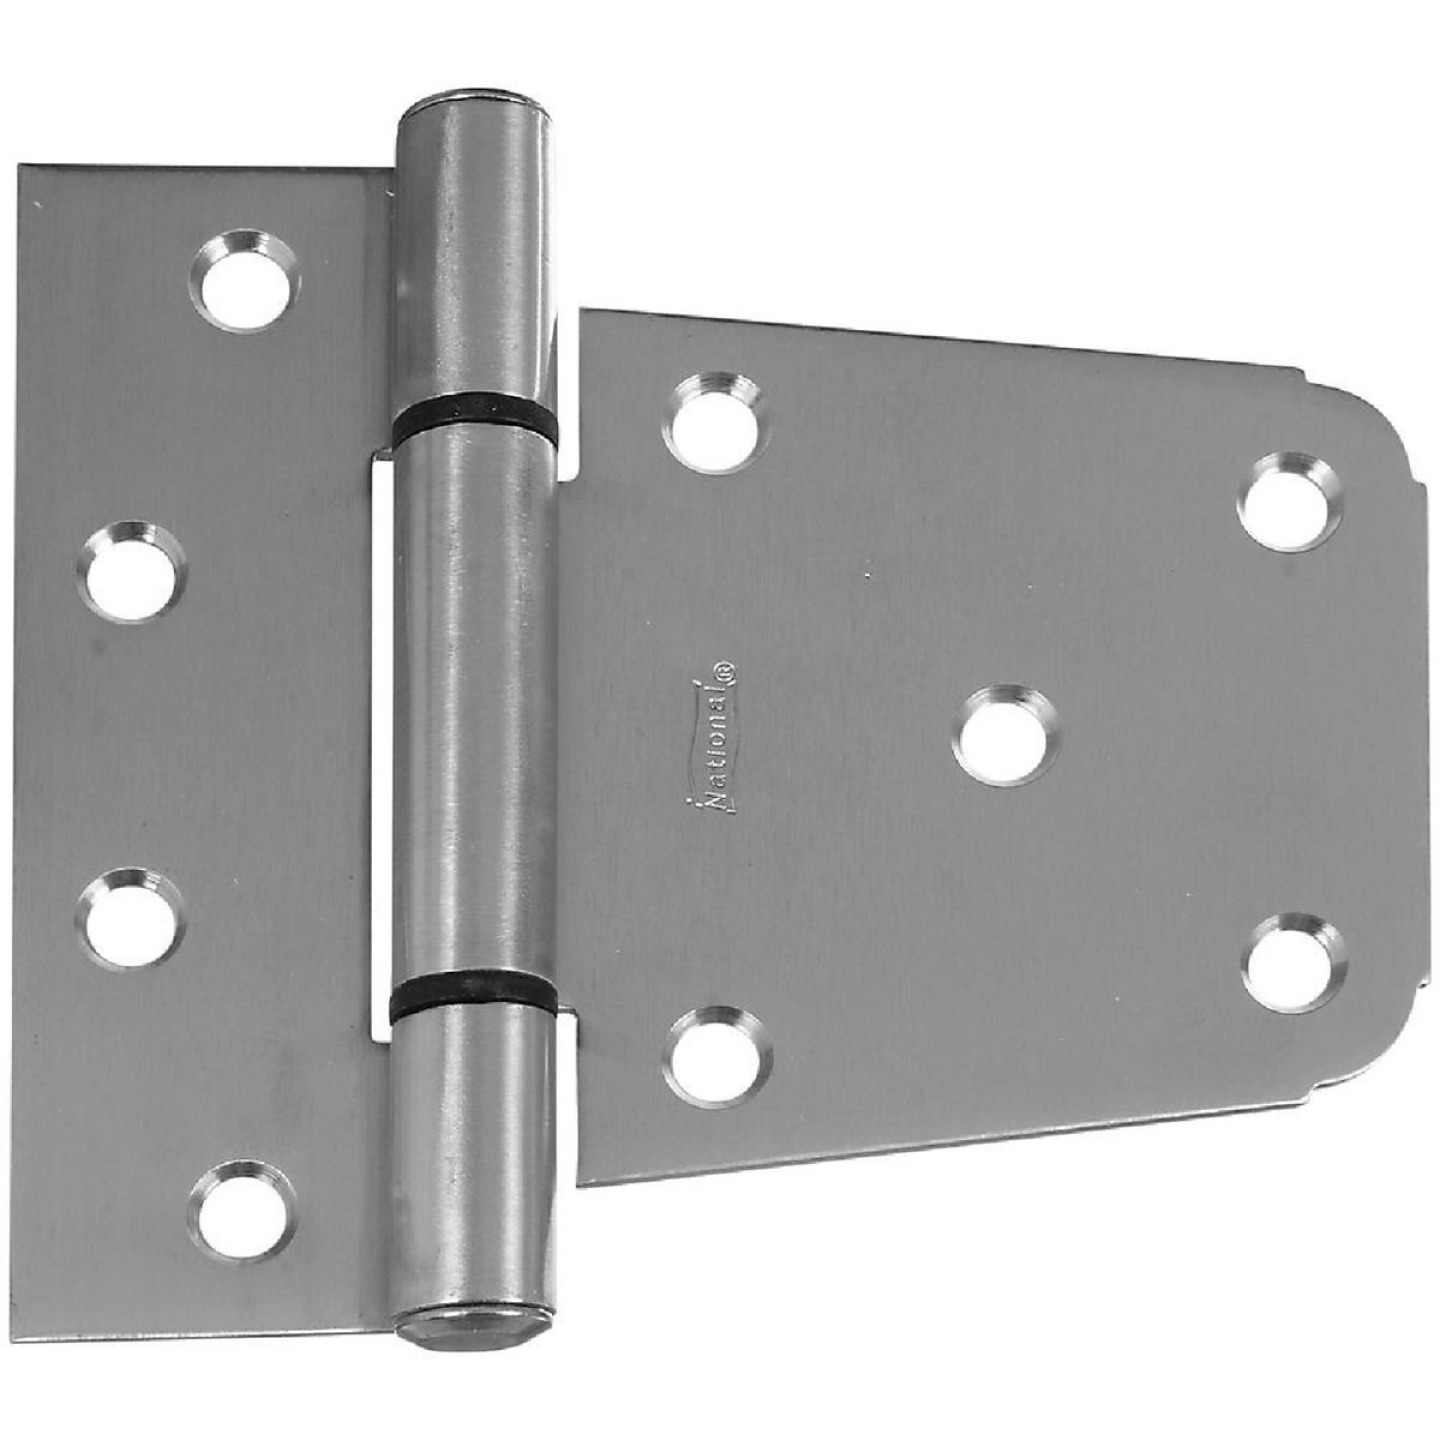 National 3-1/2 In. Heavy-Duty Gate Hinge Image 1